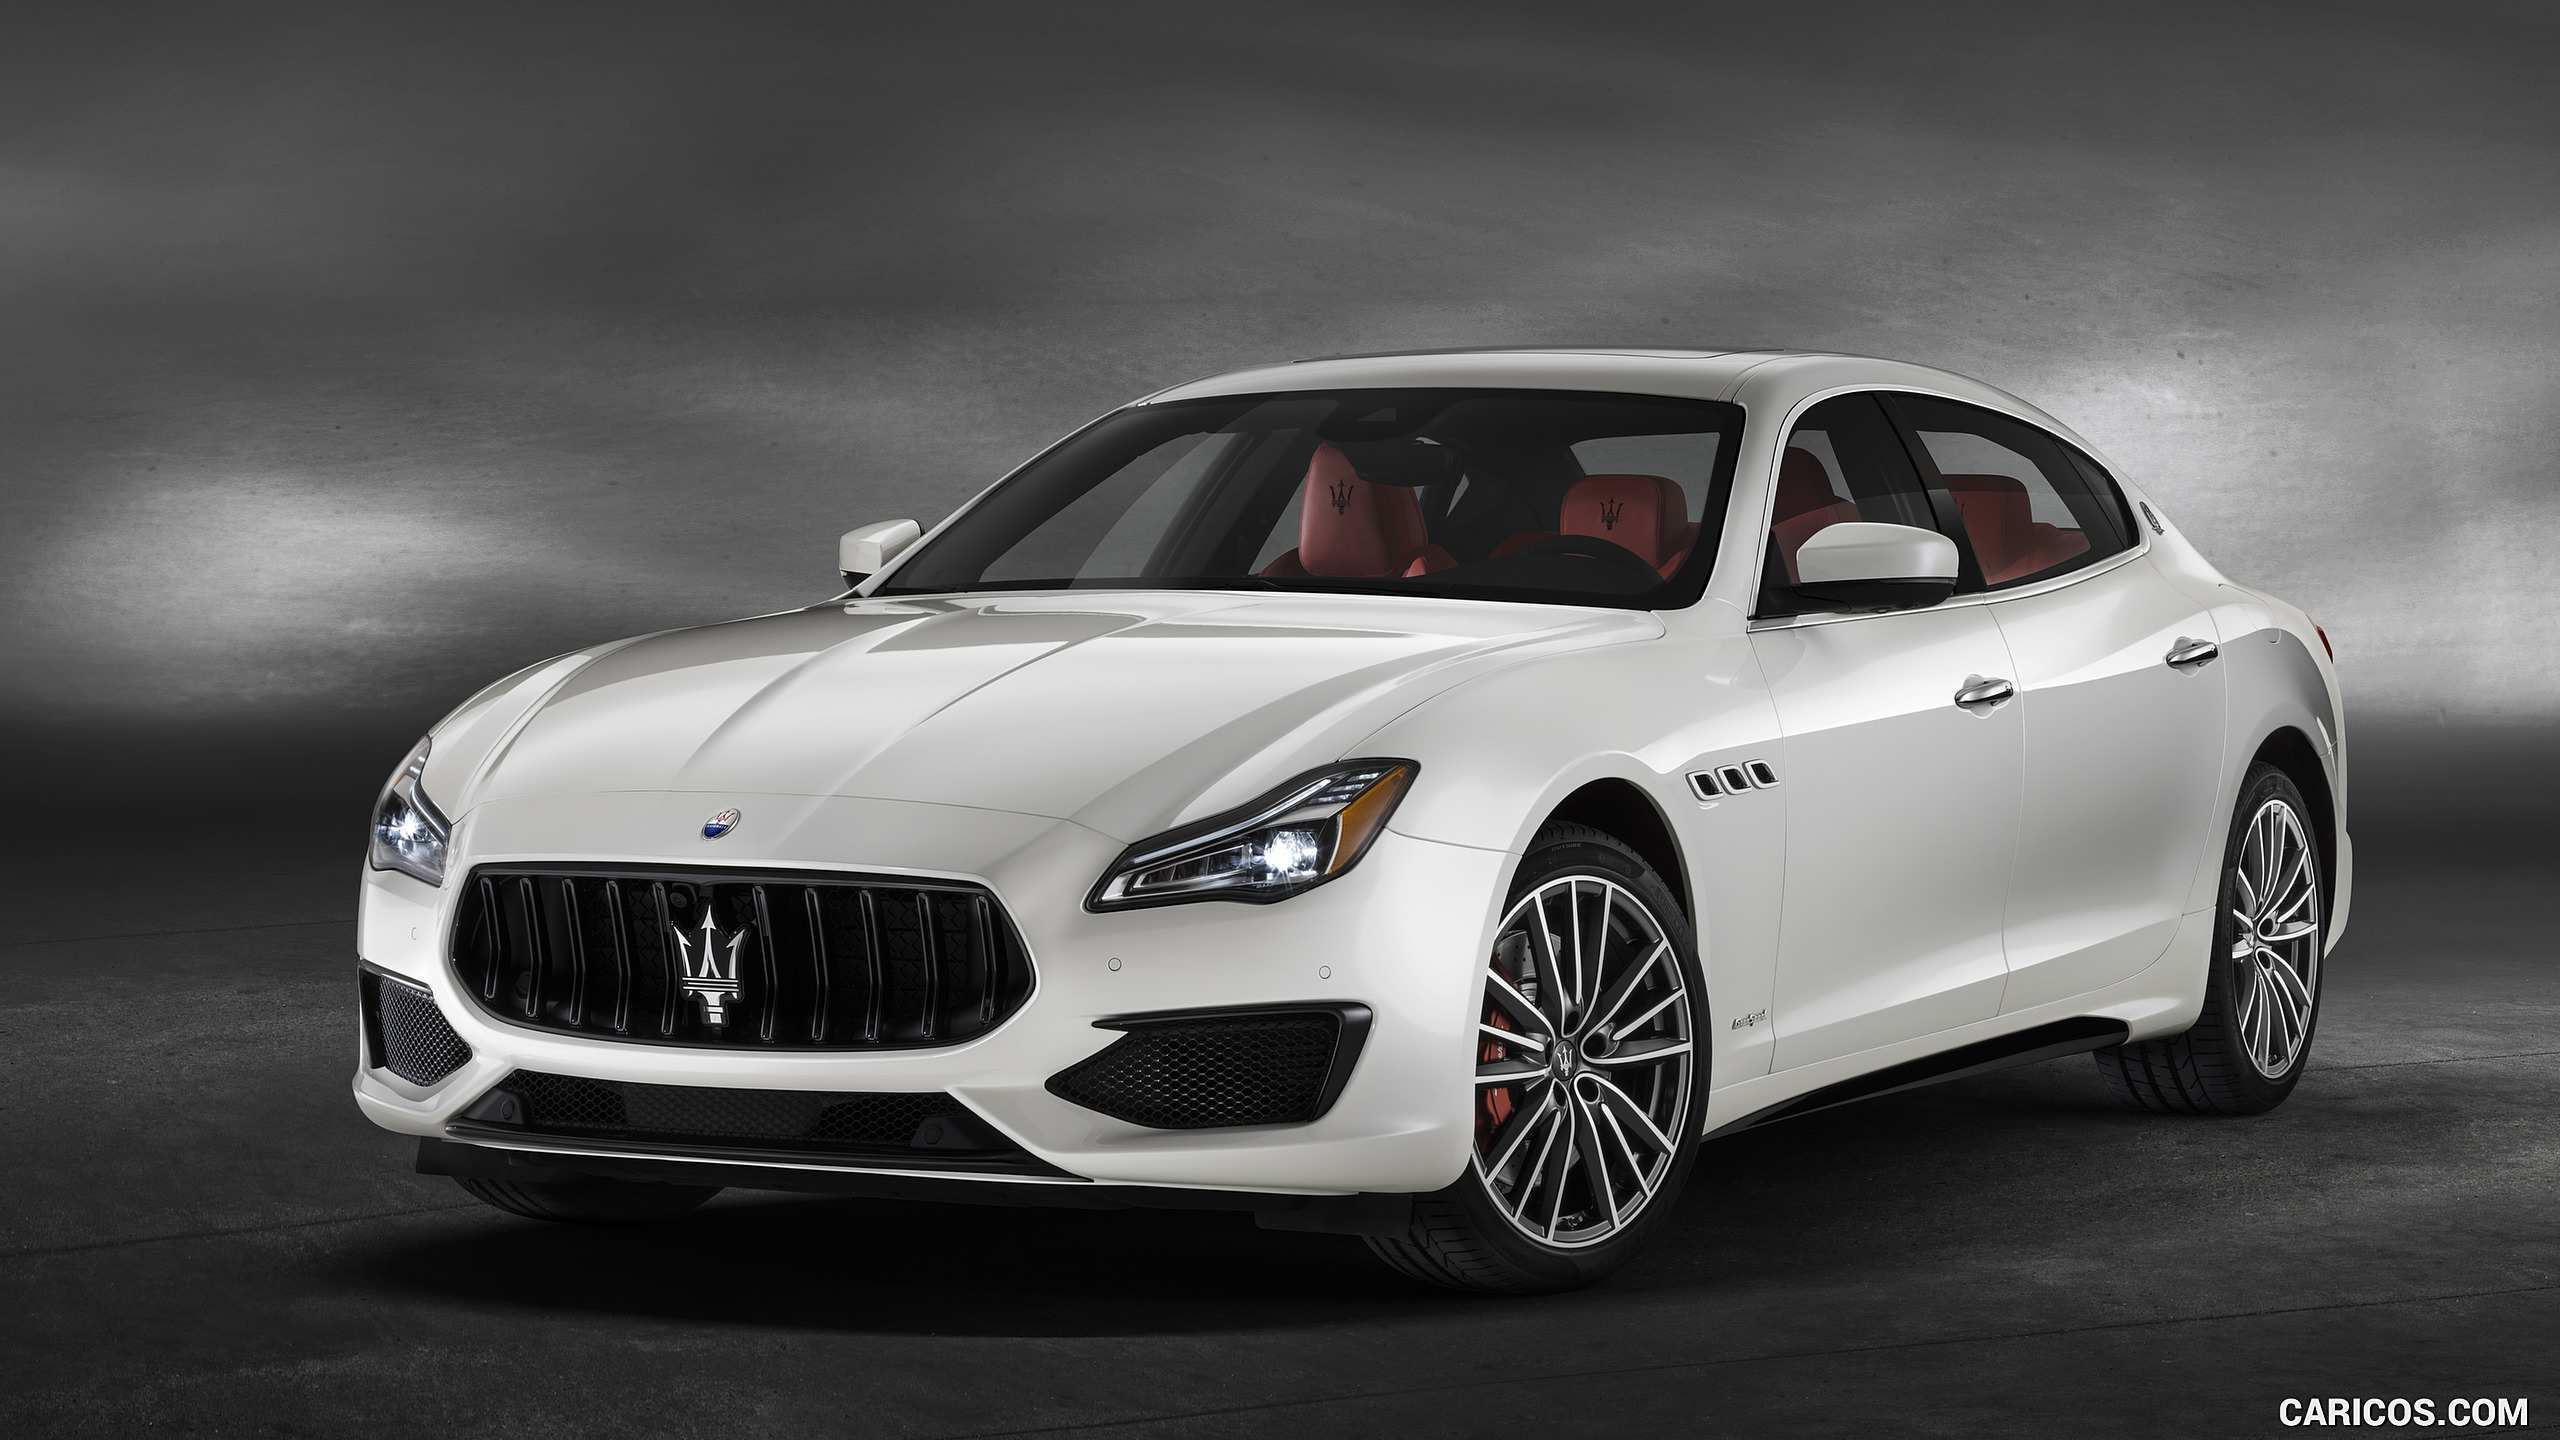 46 Best Review Maserati Quattroporte Gts 2019 Pictures for Maserati Quattroporte Gts 2019